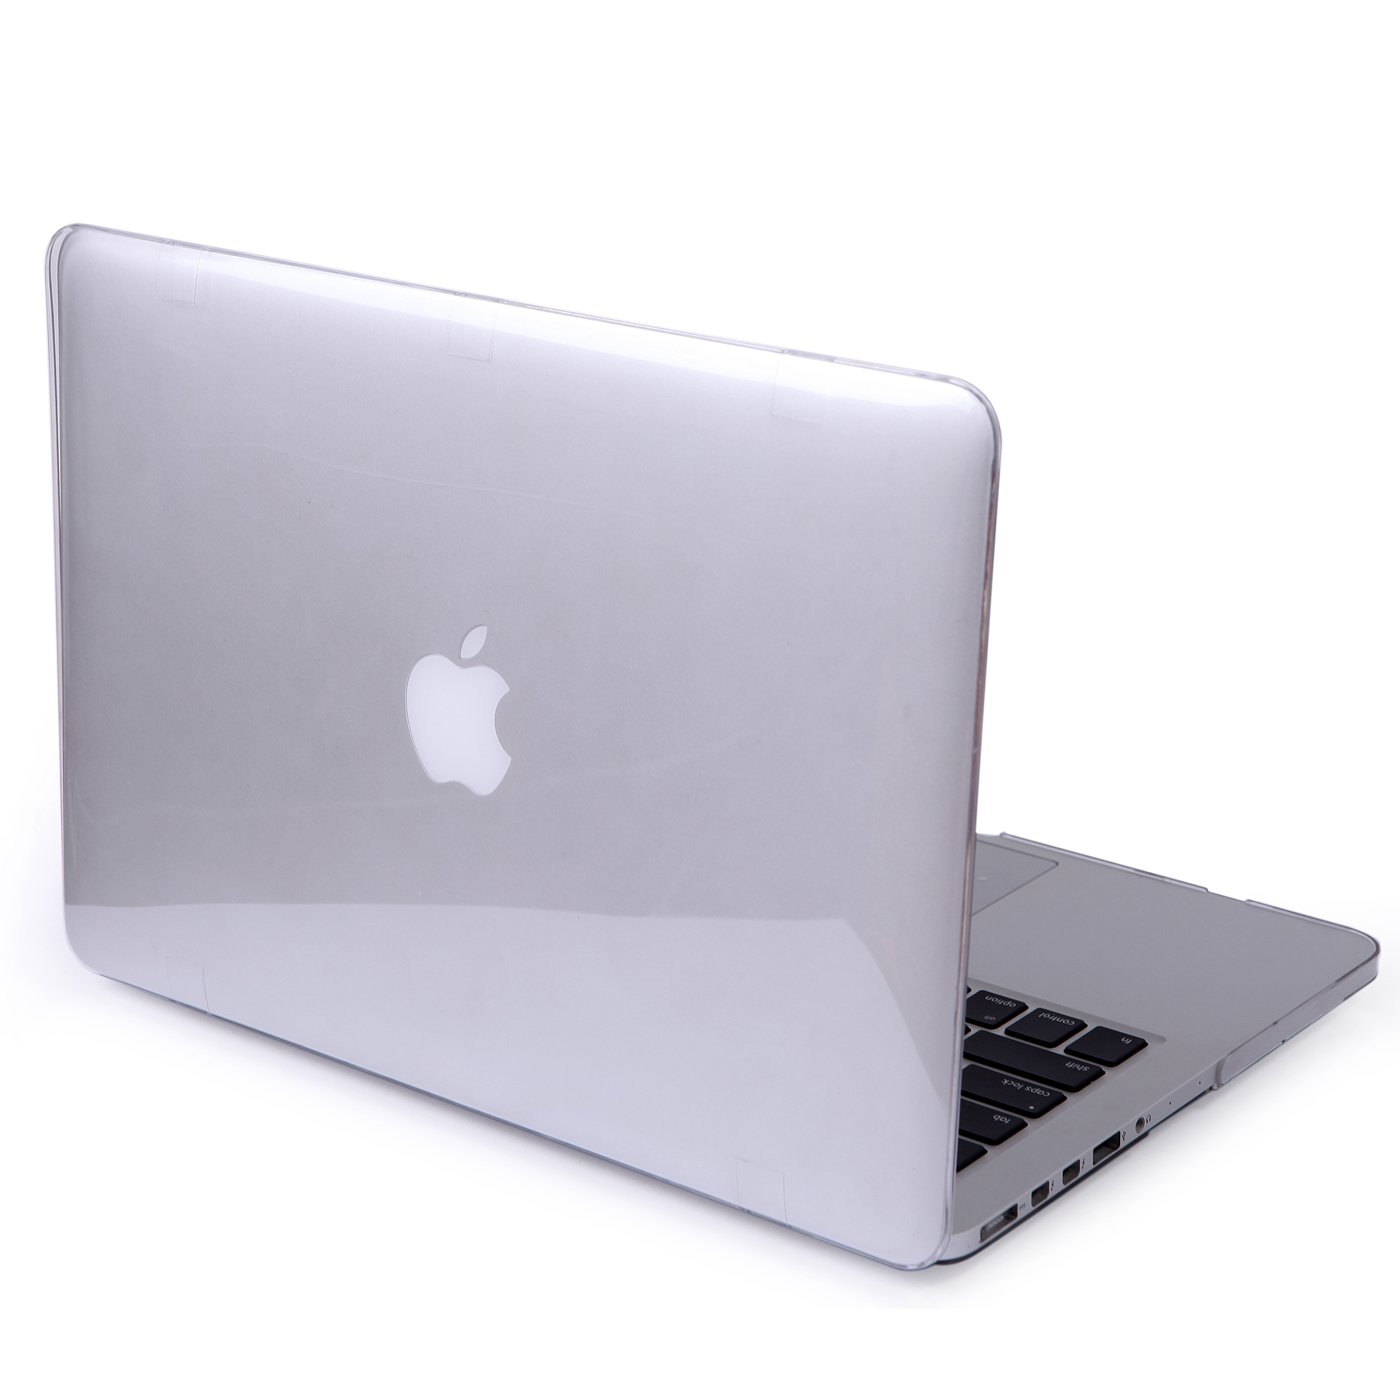 HDE Plastic Hard Shell Case Cover for Apple MacBook Pro 13 Inch (Retina Models: A1425/A1502), Clear